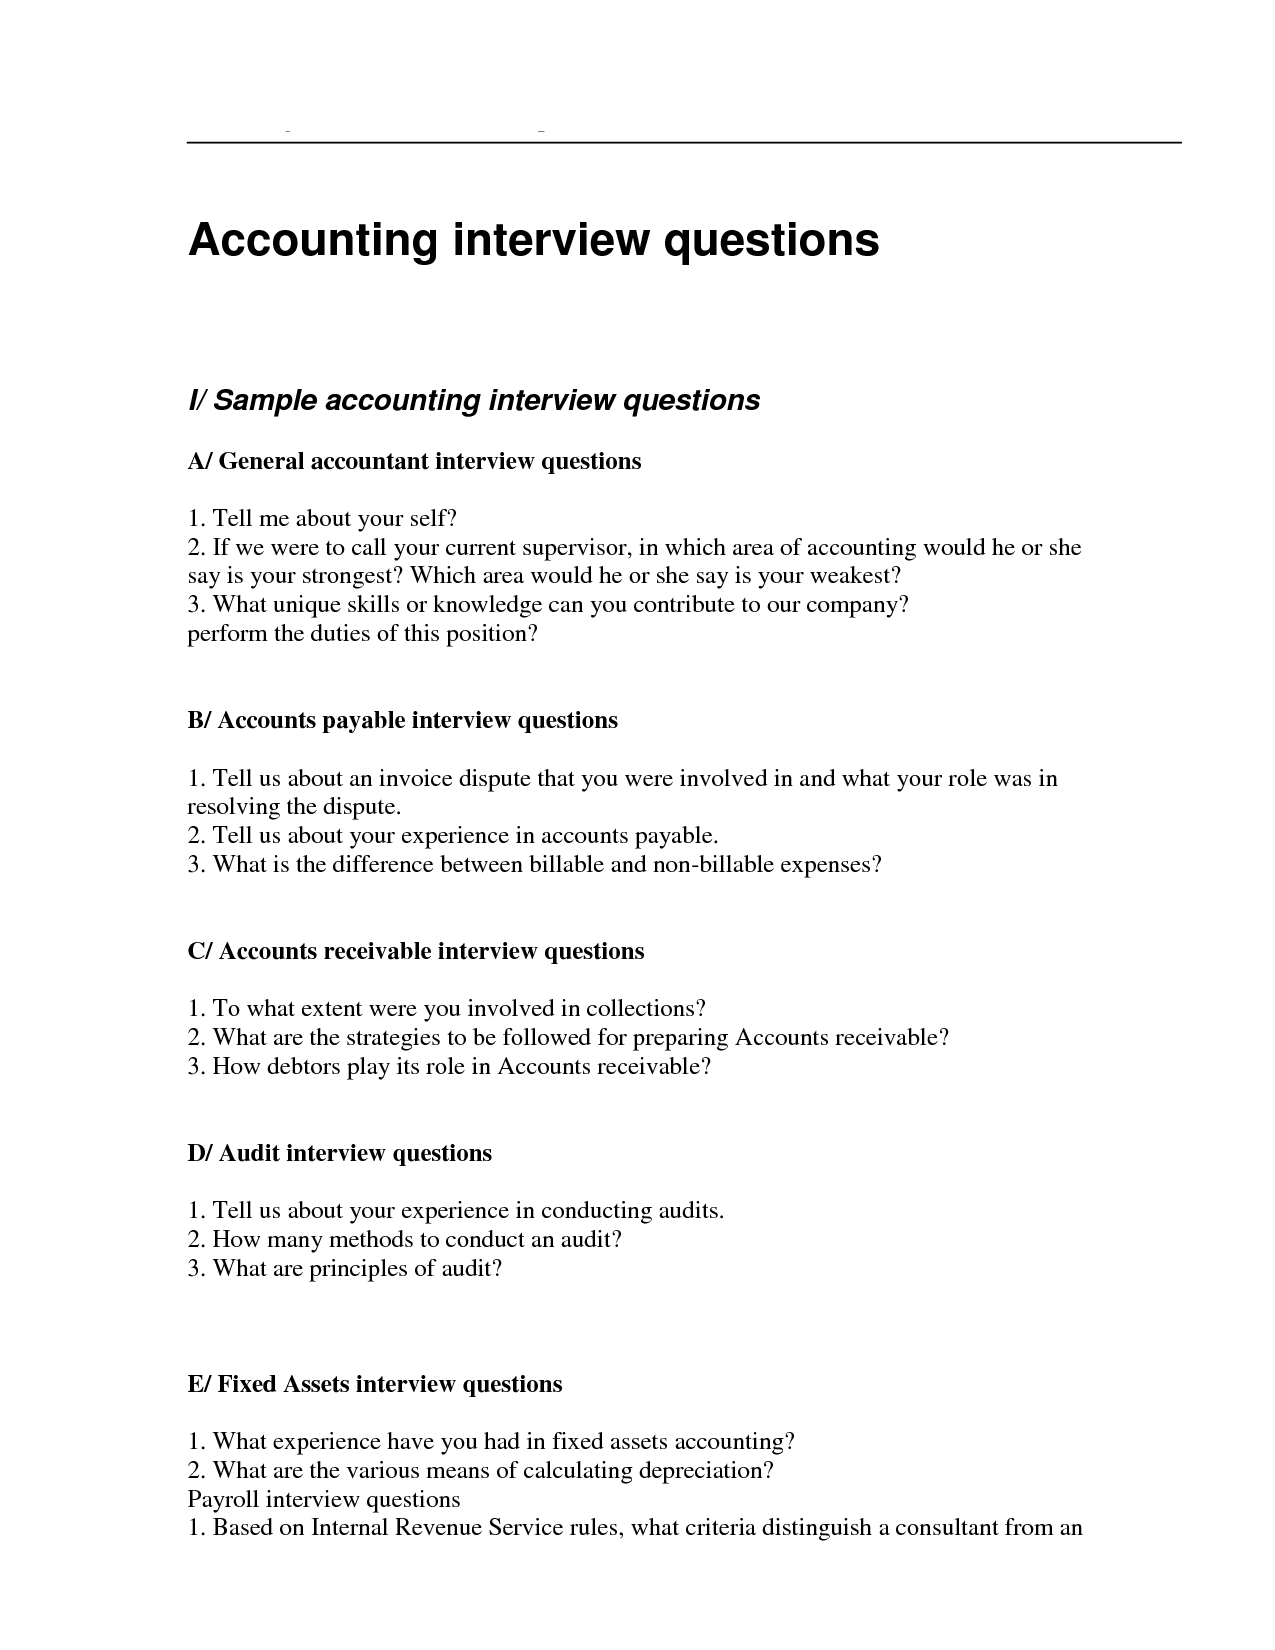 accountant interview questionnaire sample an accountant interview questionnaire is a